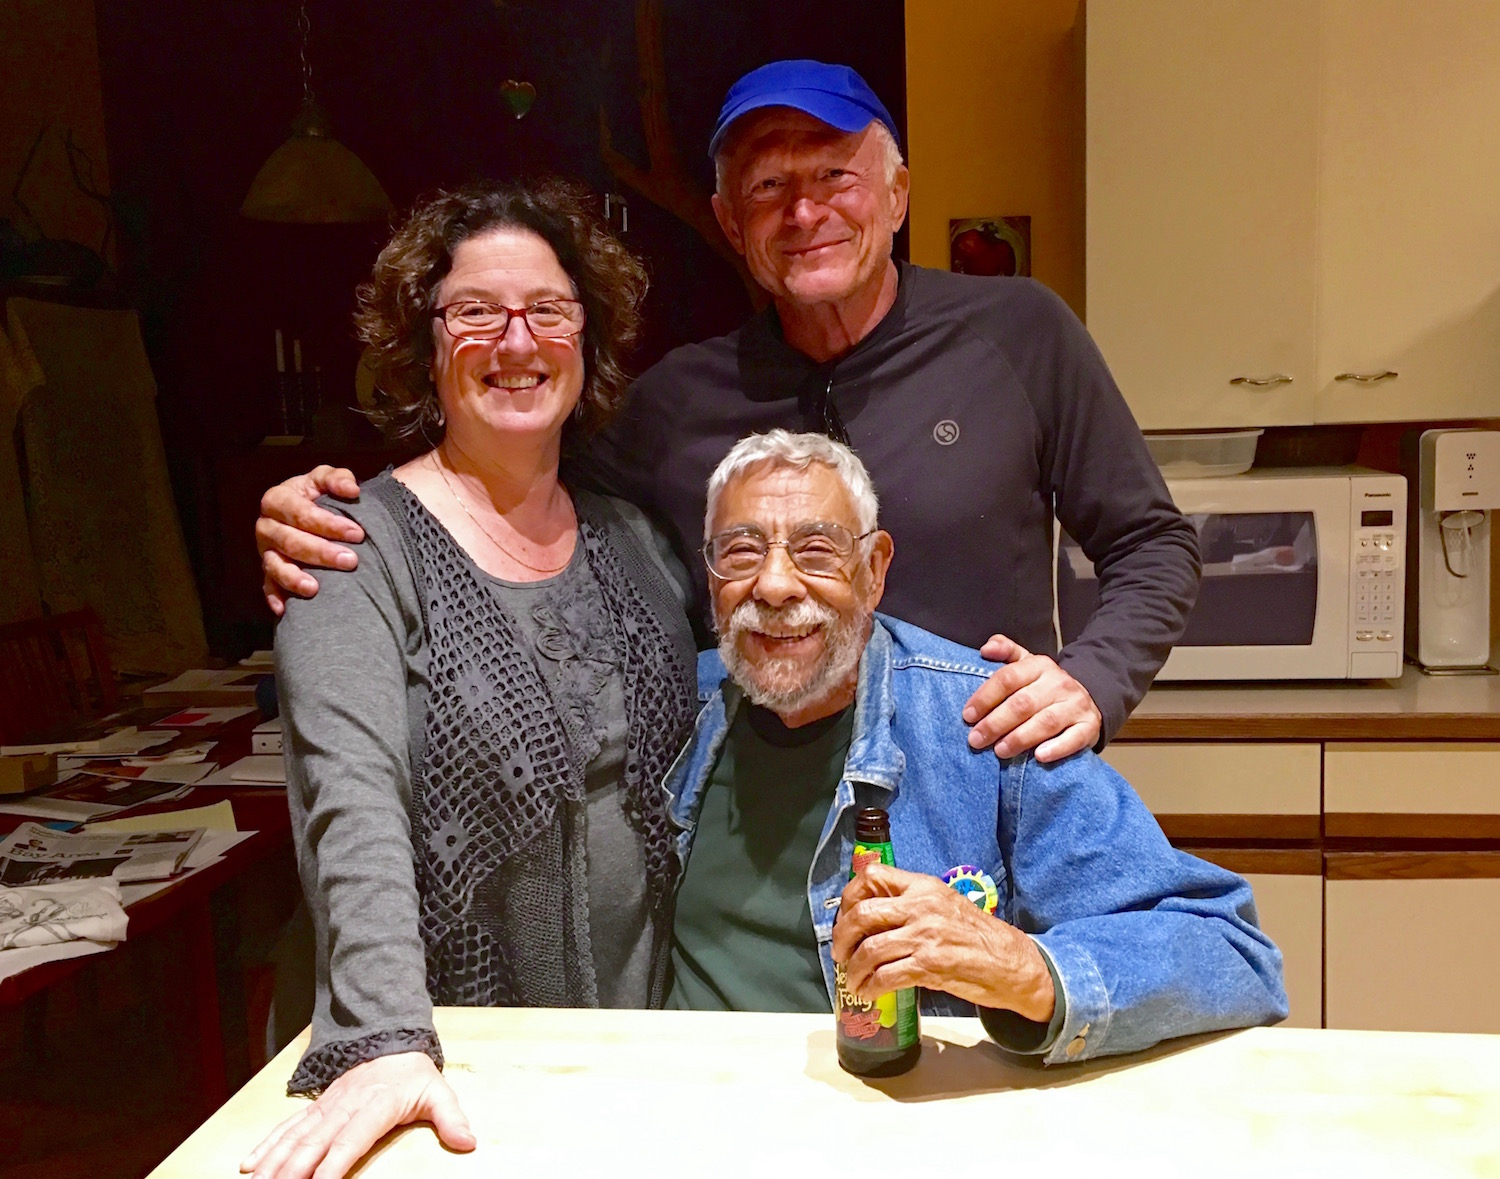 My old friends Rafael Gonzales and Deena Levy. Although I lived there for 7 years in the late 1980's,  I hadn't been back to the East Bay for about 35 years.